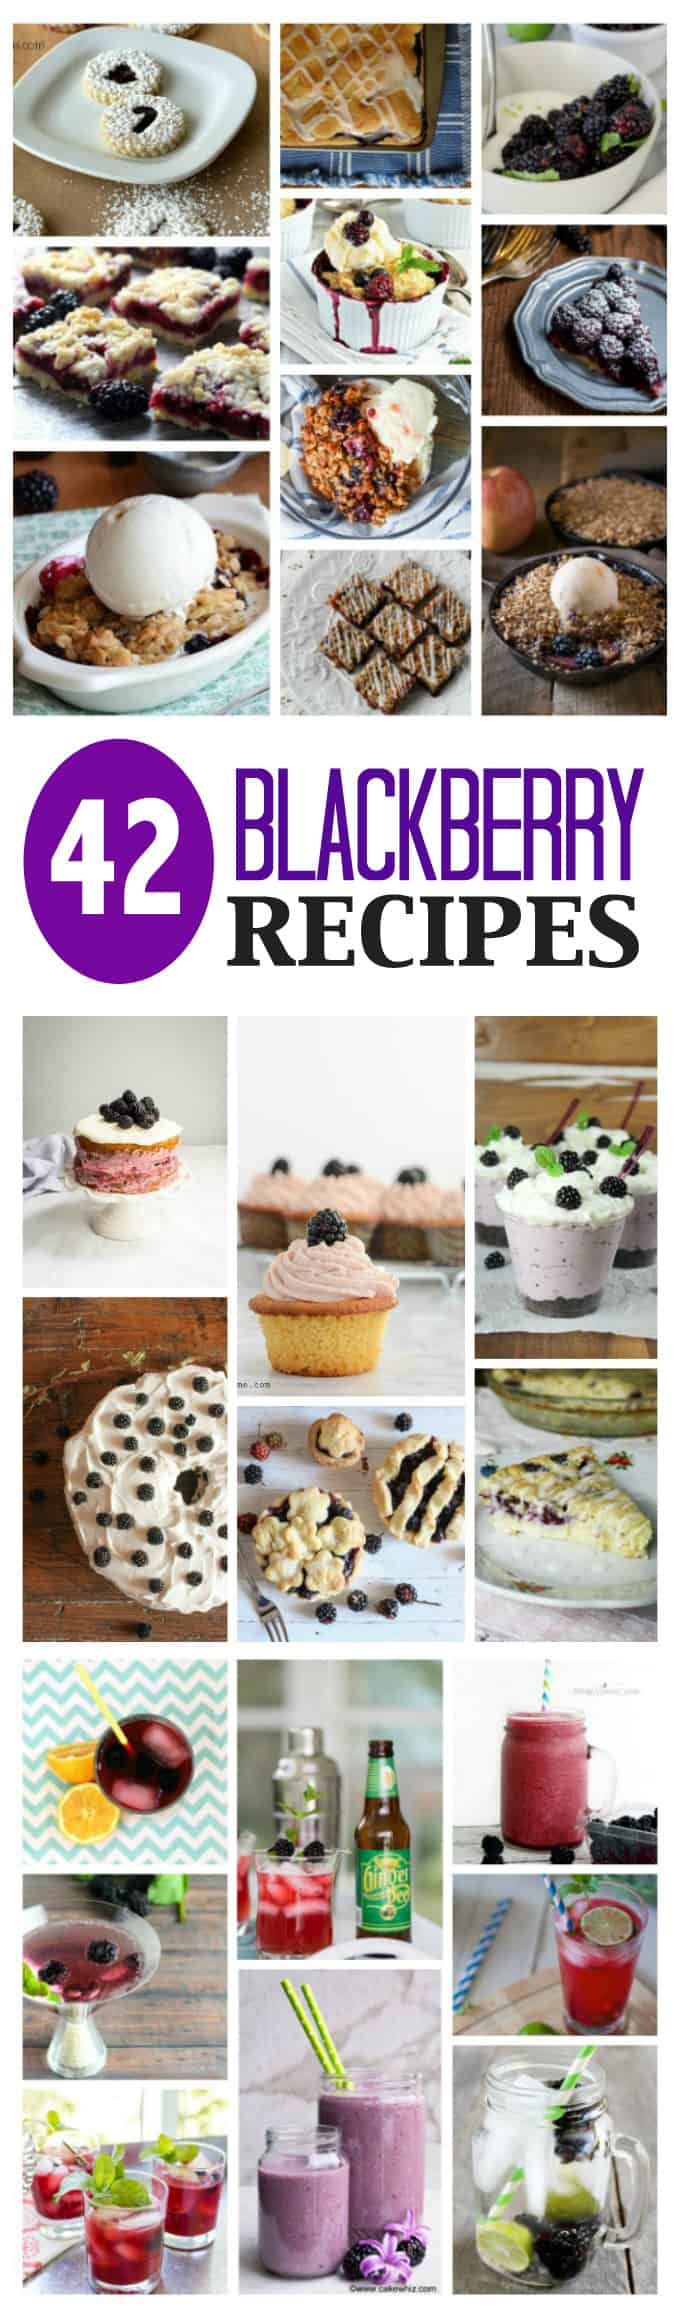 If you love blackberries like I do, you'll want to definitely save all of these delicious blackberry recipes to try yourself! From breakfast to dessert.